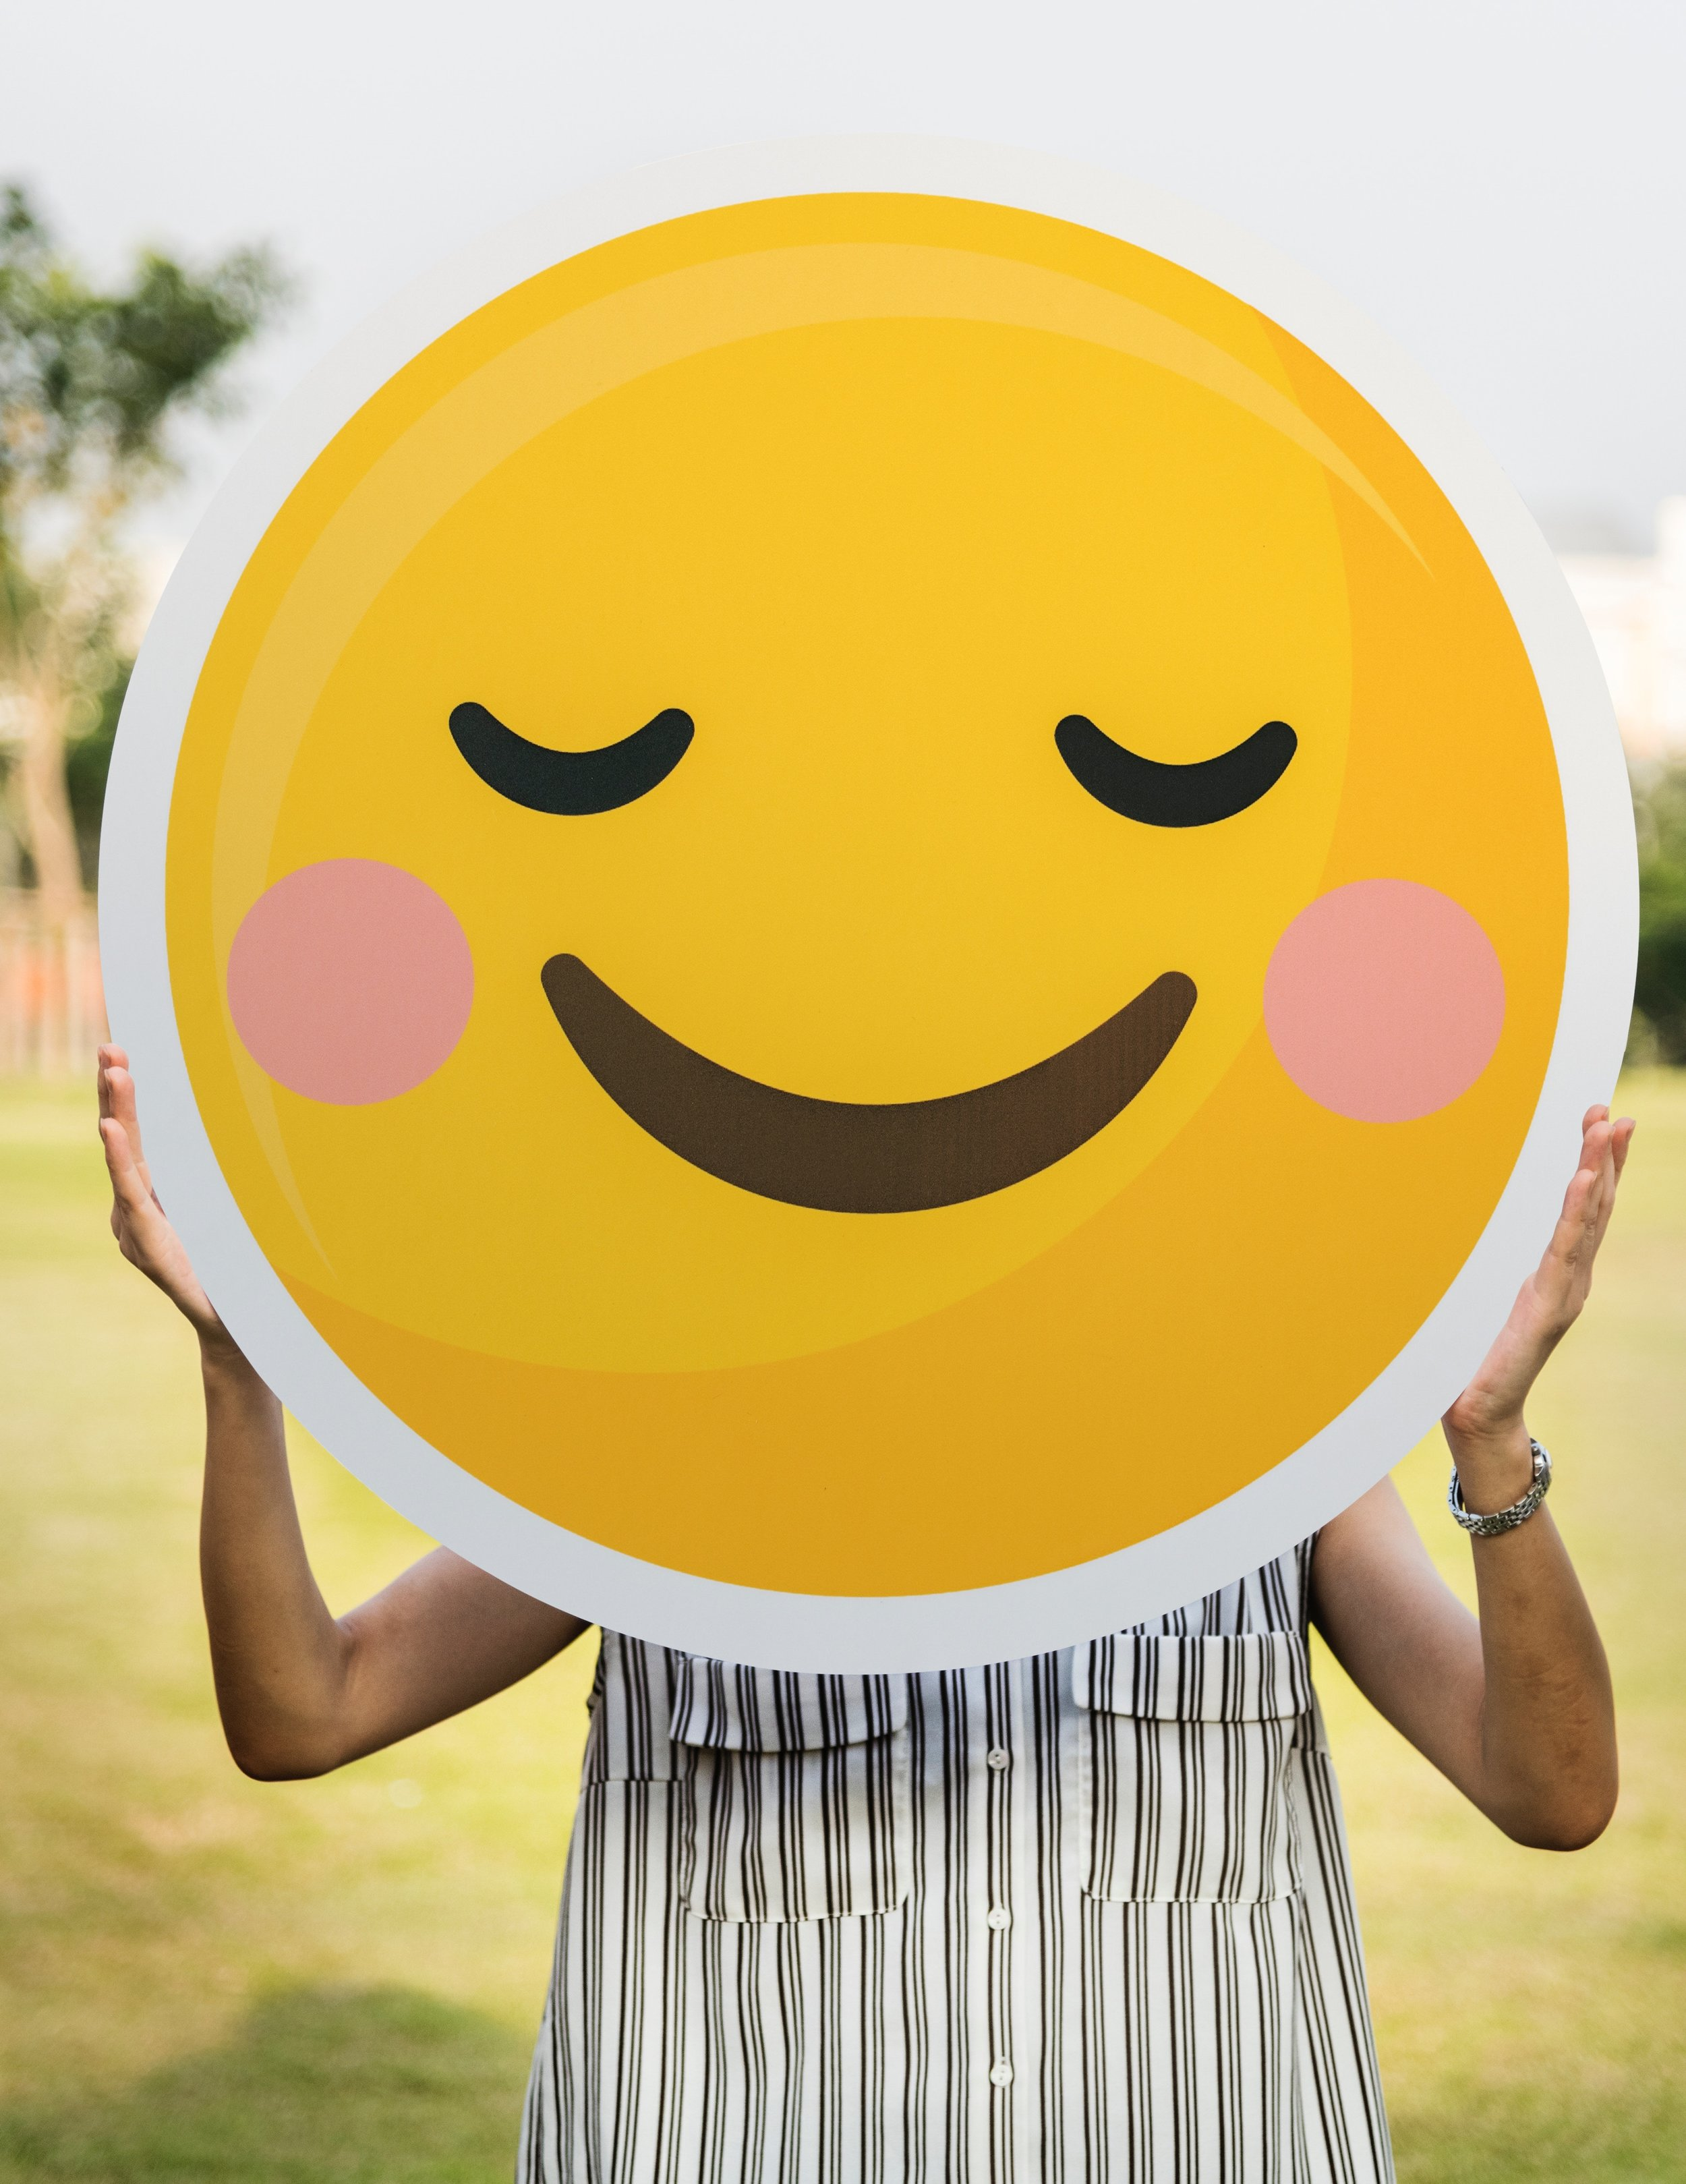 Excellent customer service leads to happy brand ambassadors.